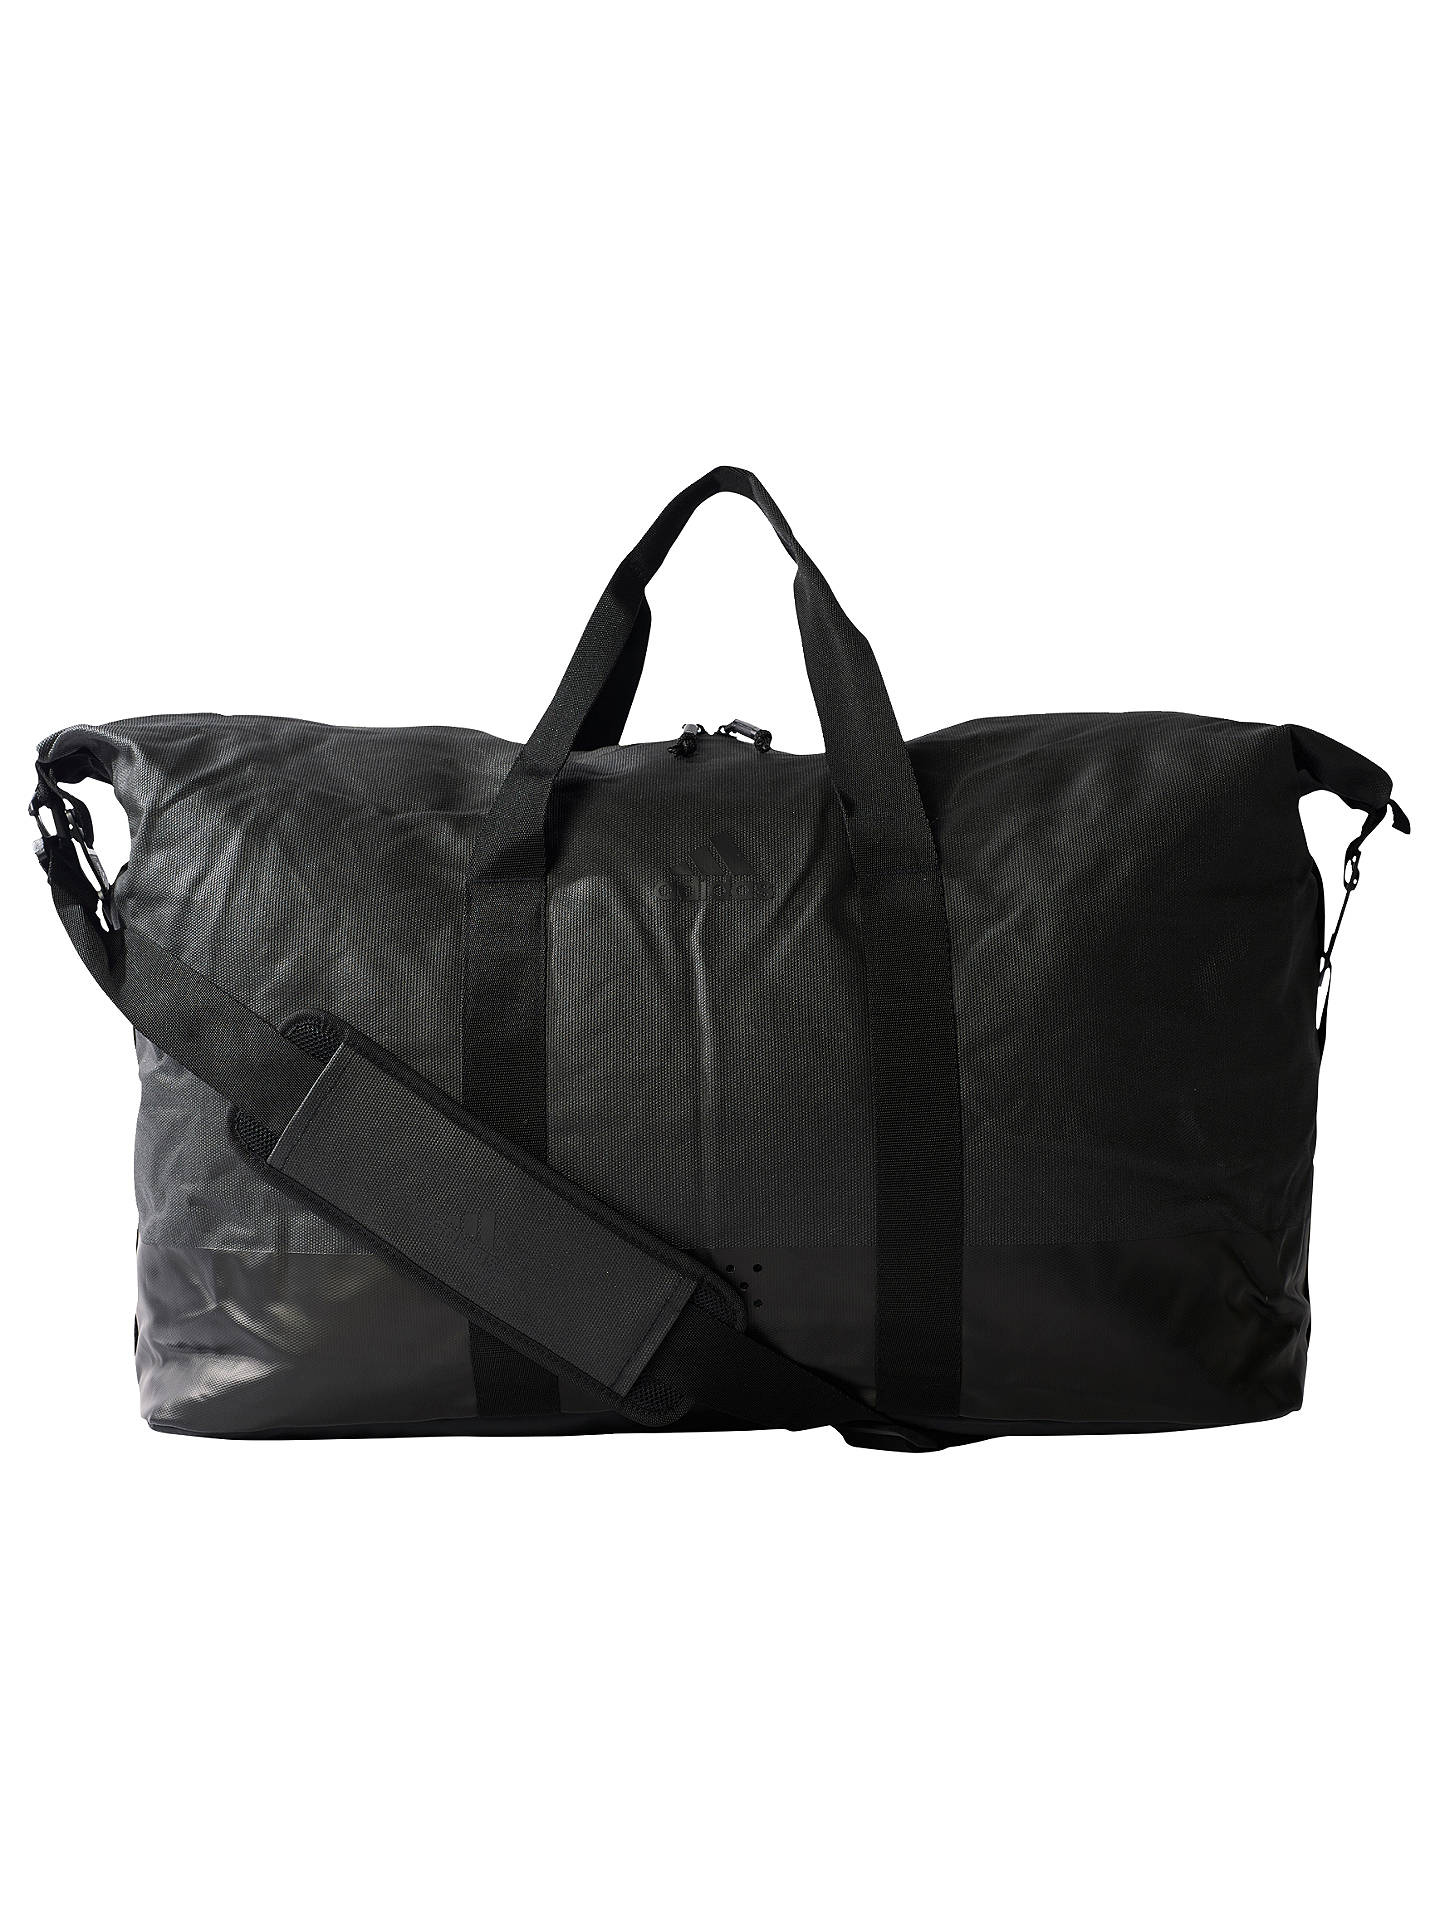 Adidas Top Training Team Bag, Black at John Lewis & Partners